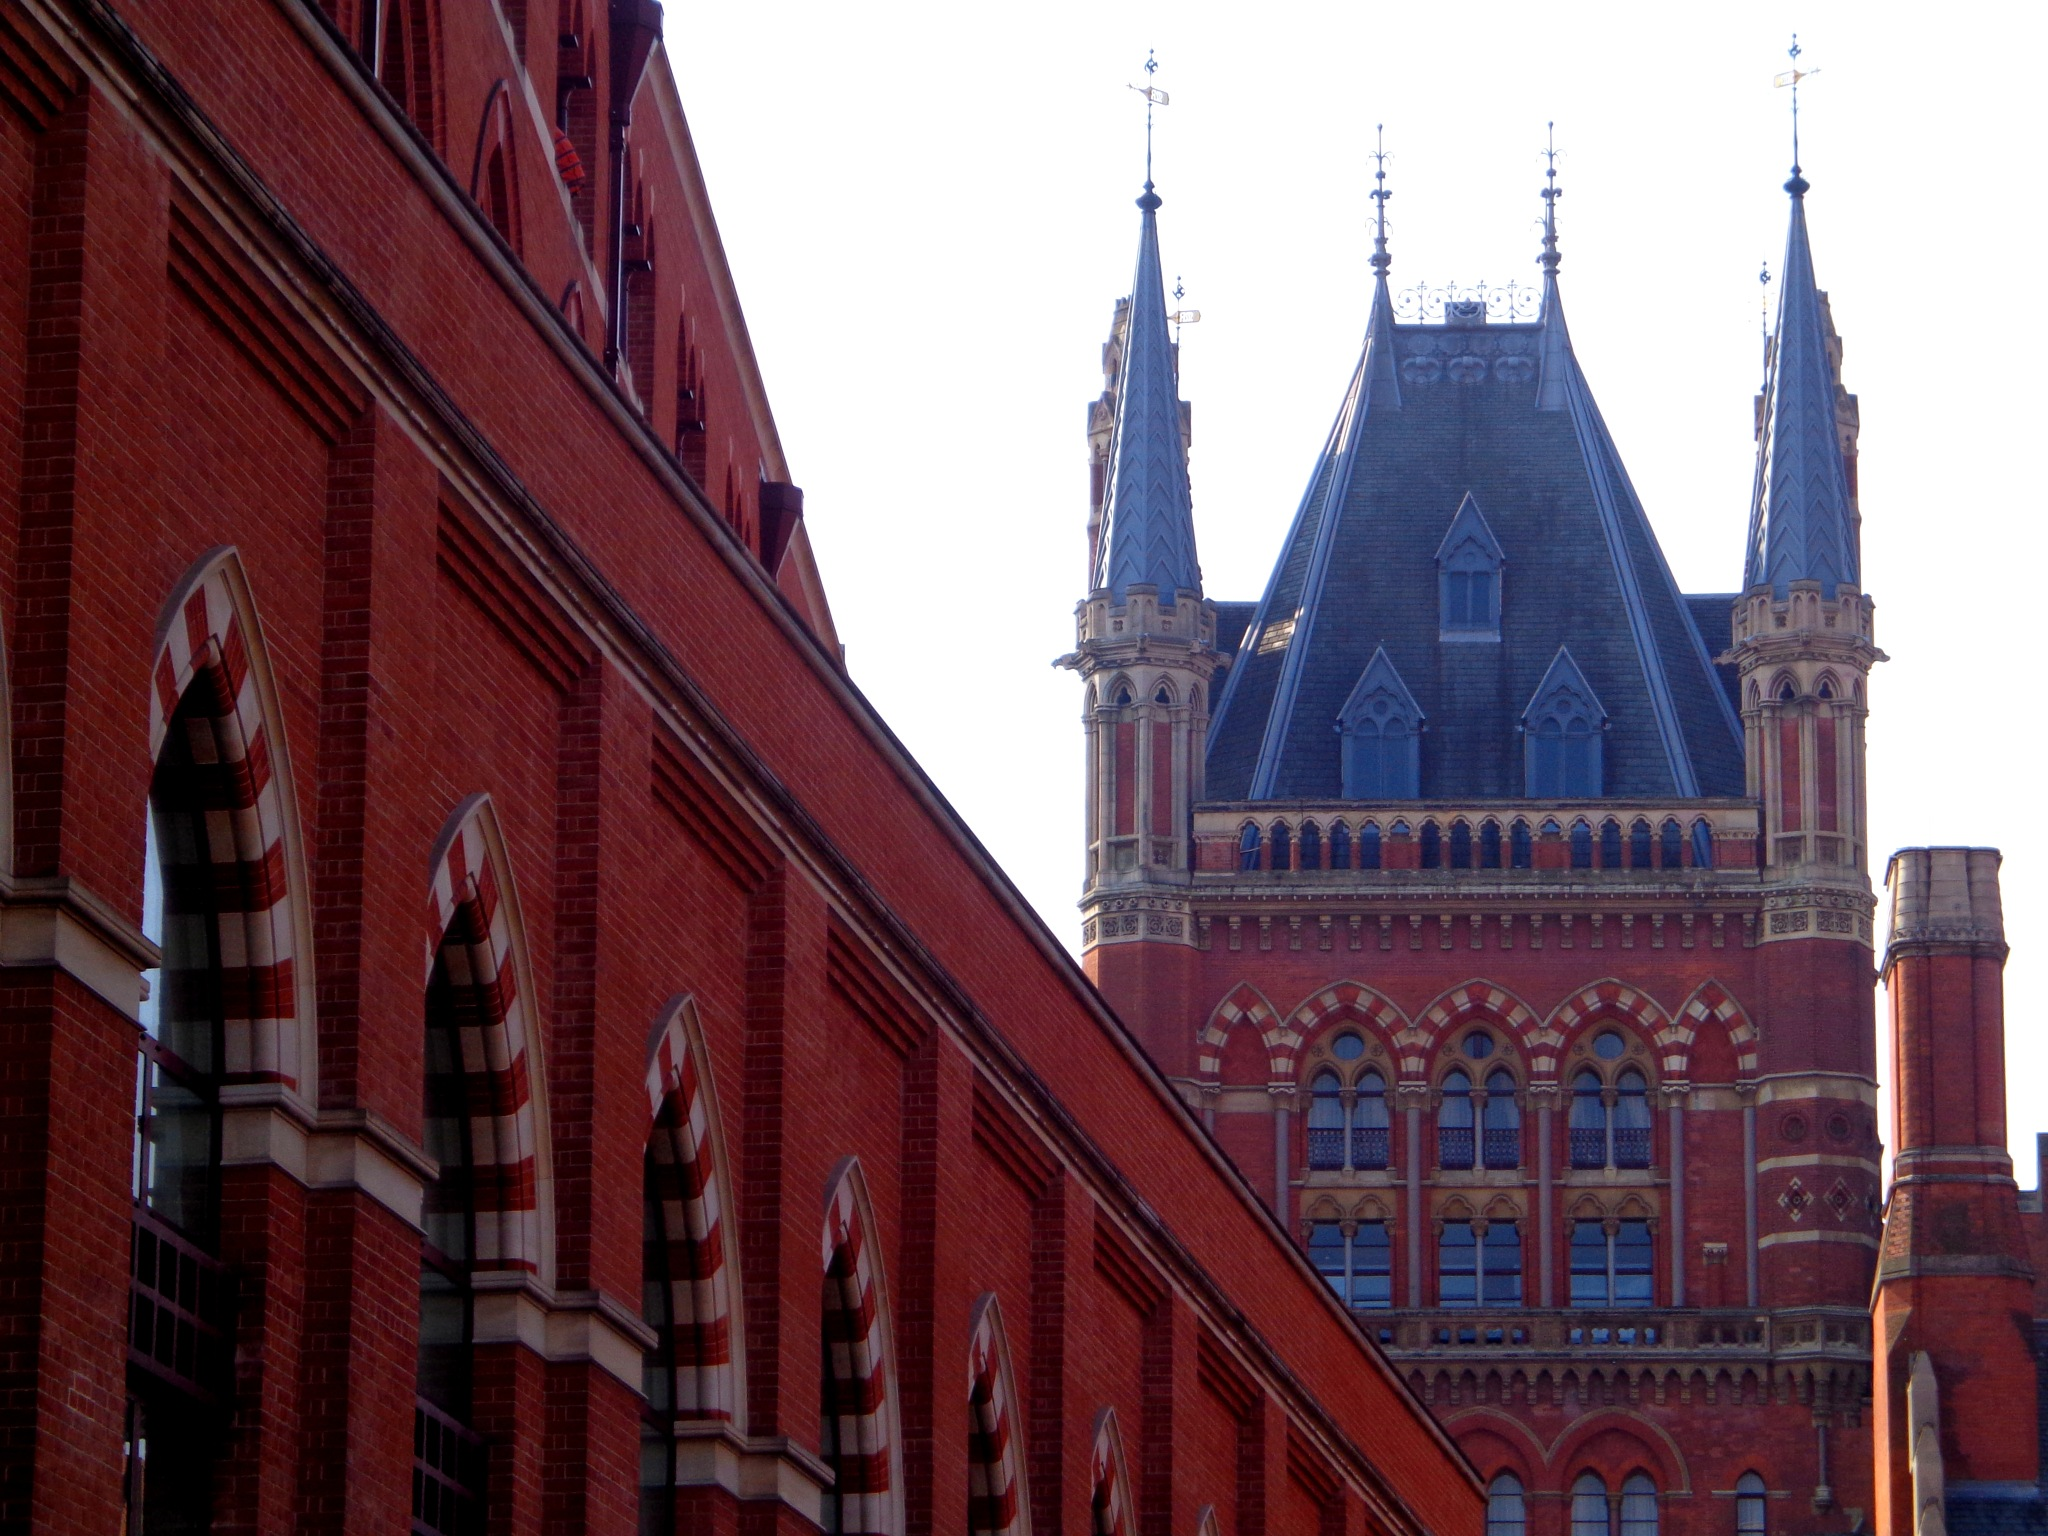 St Pancras Station by Ron Margulies